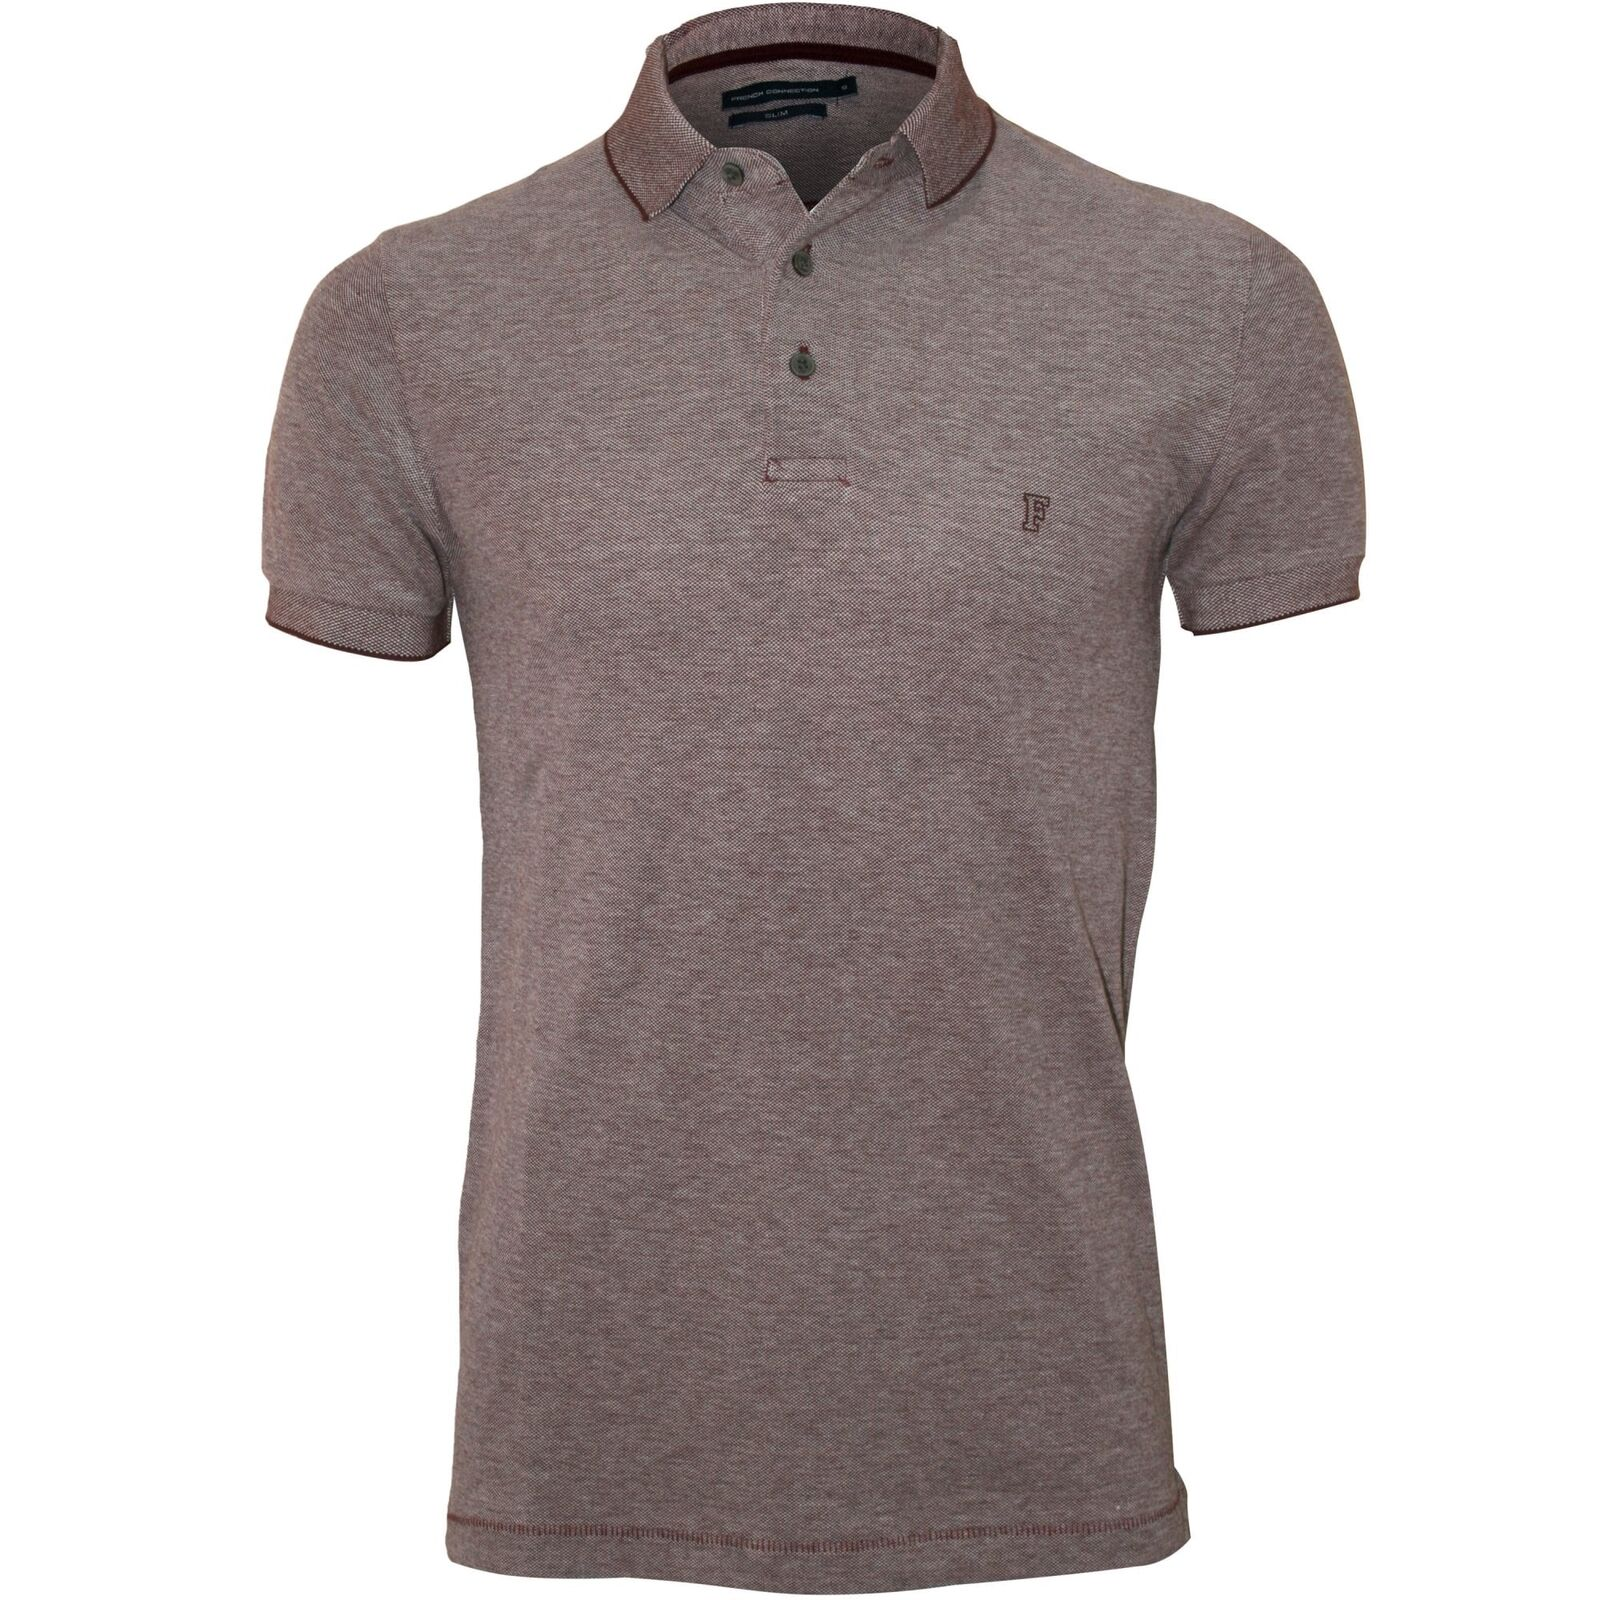 French Connection Classic Jersey Men's Polo Shirt, Burgundy Melange